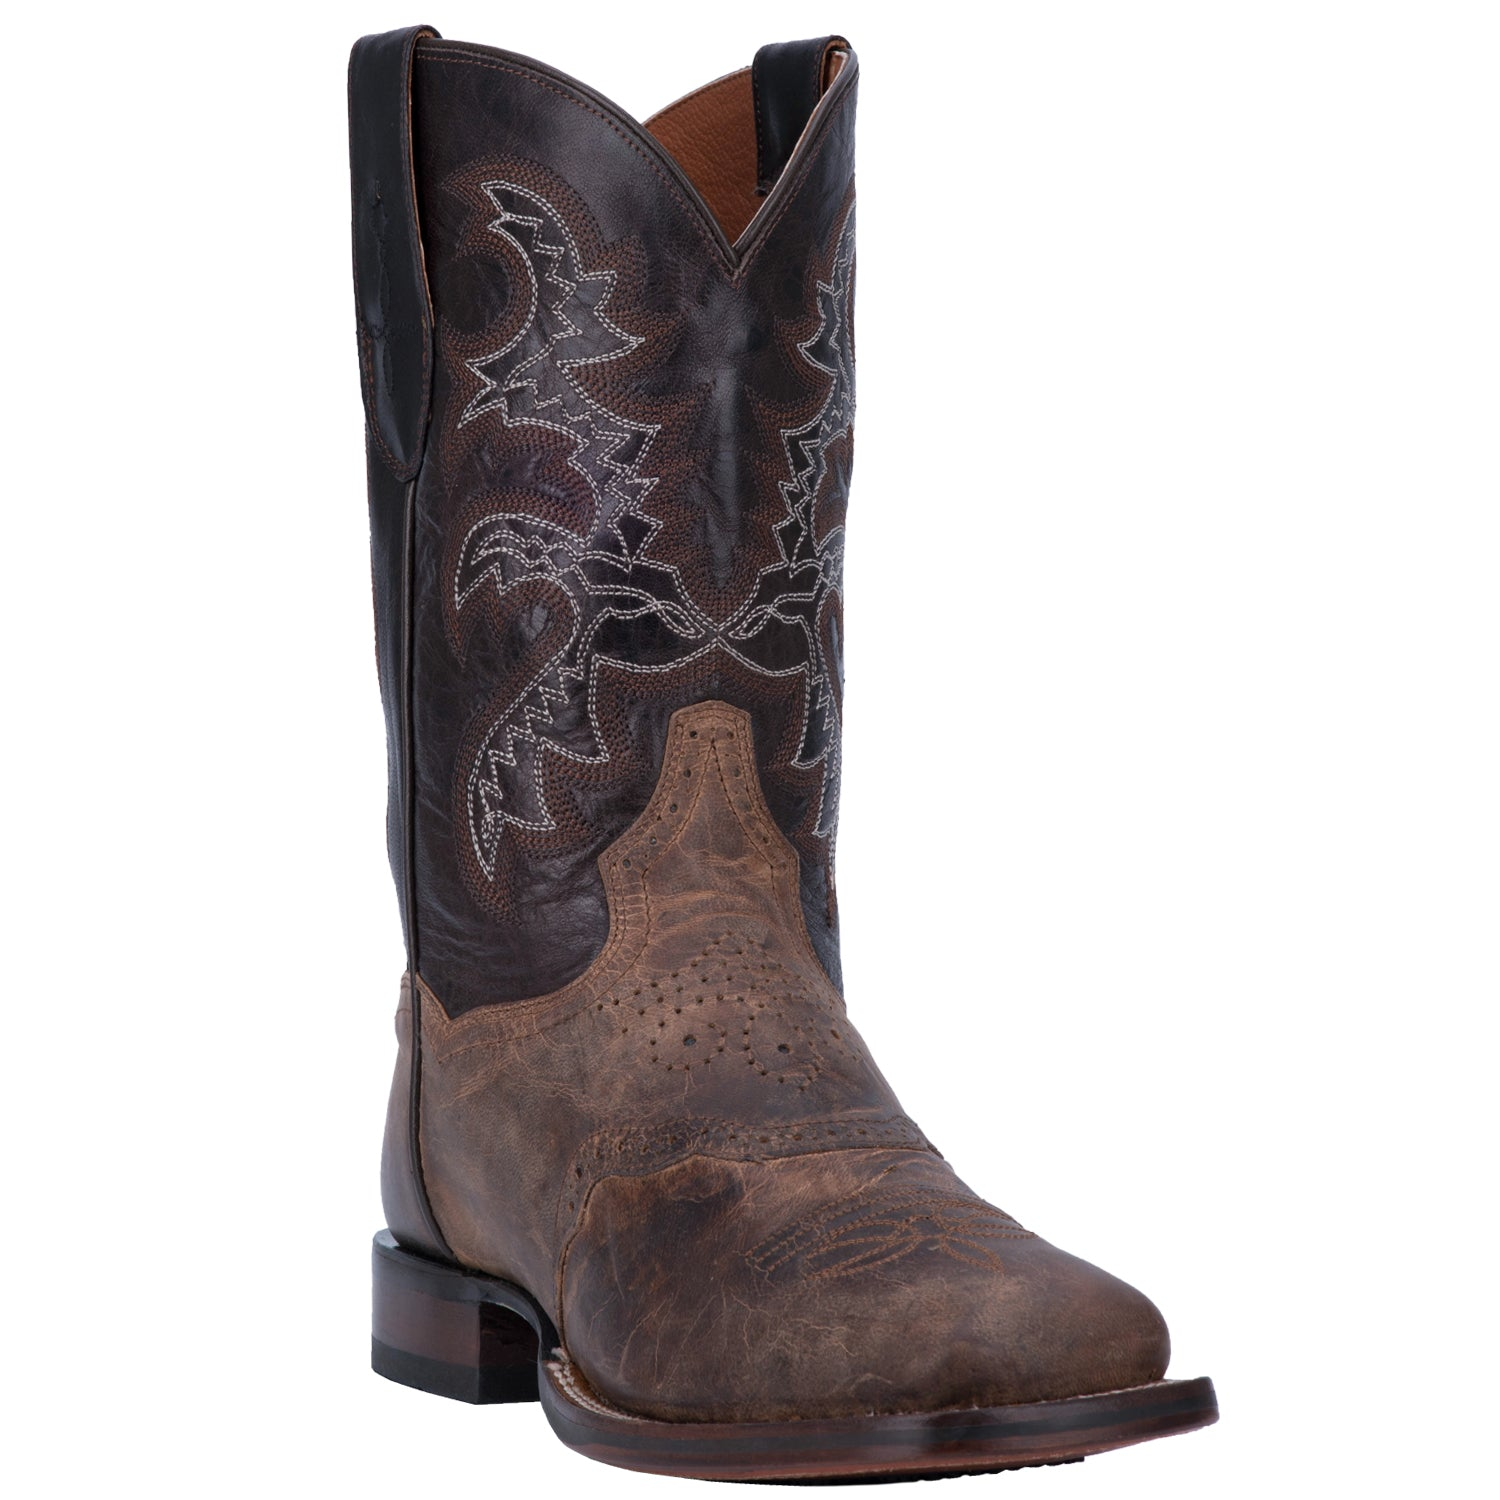 FRANKLIN LEATHER BOOT 4252535423018